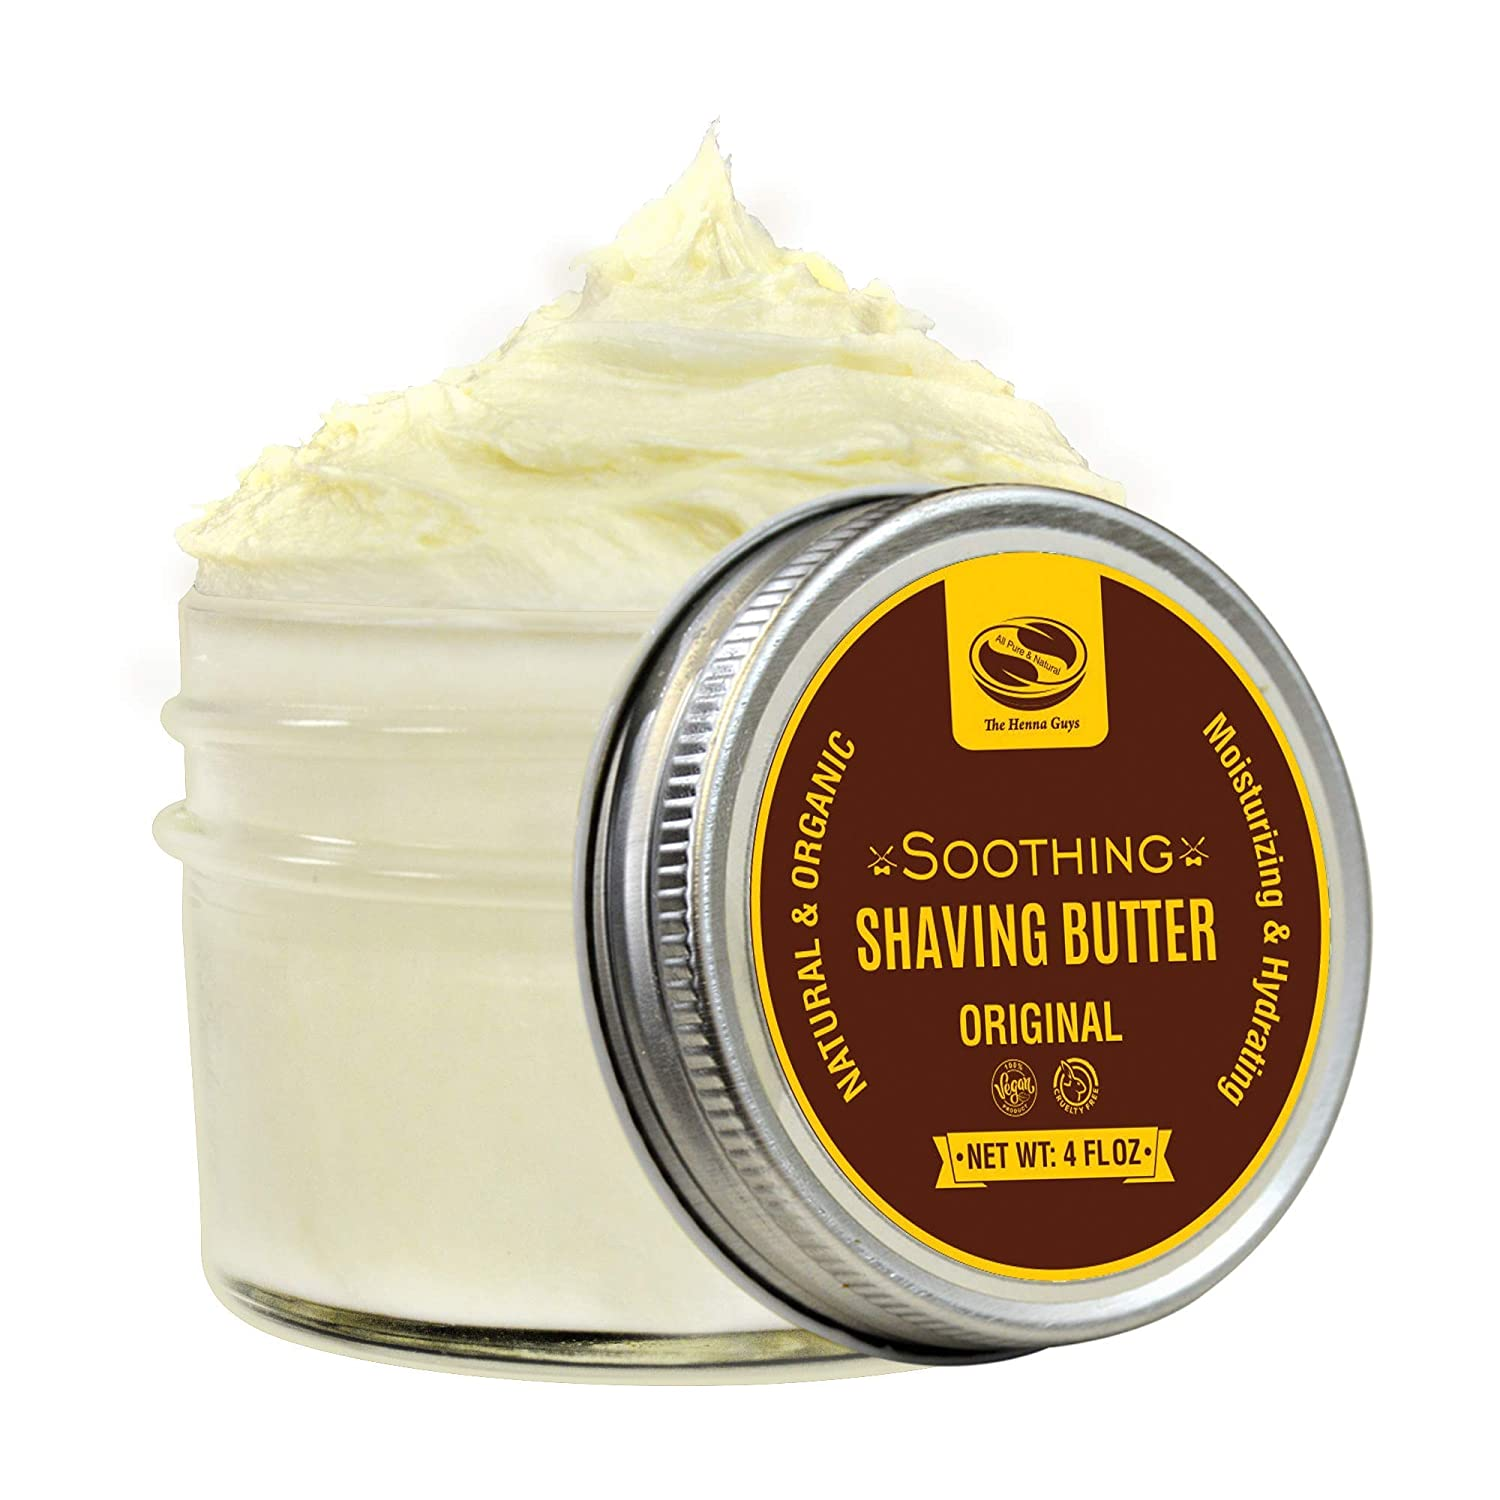 the henna guys organic shaving butter cream with shea butter and aloe